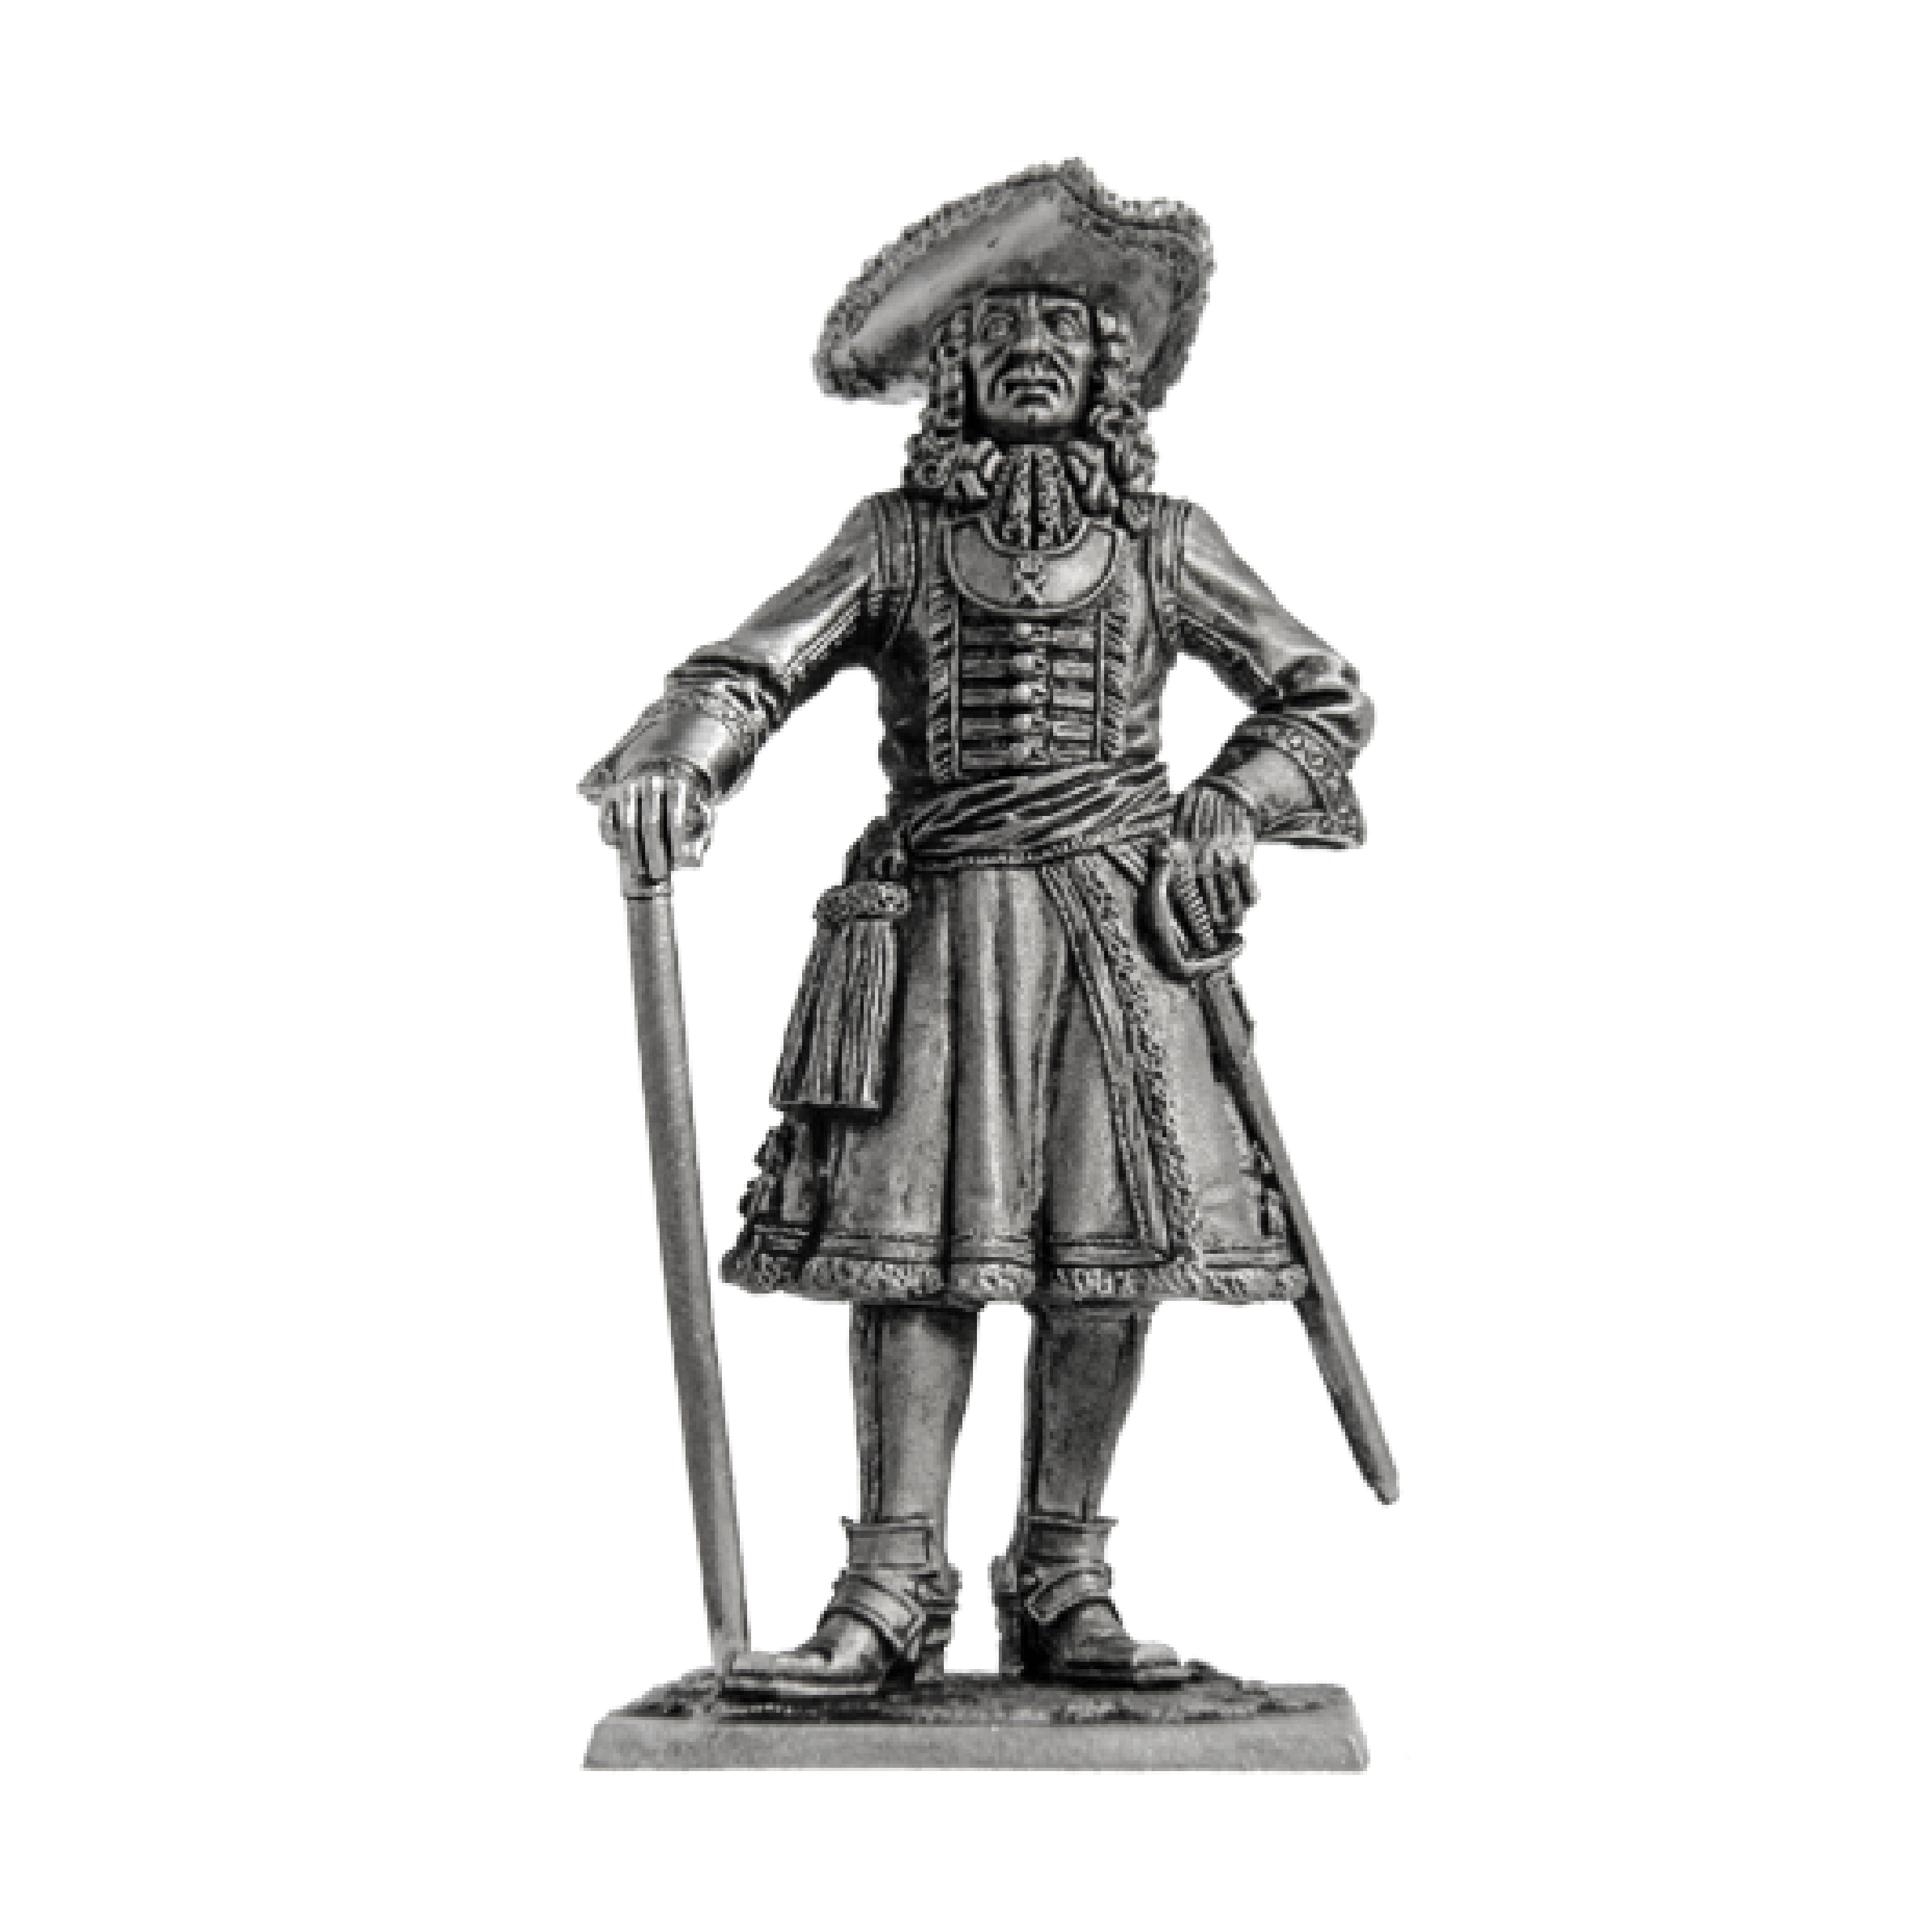 Headquarters officer of the Preobrazhensky regiment, 1698-1700 Russia